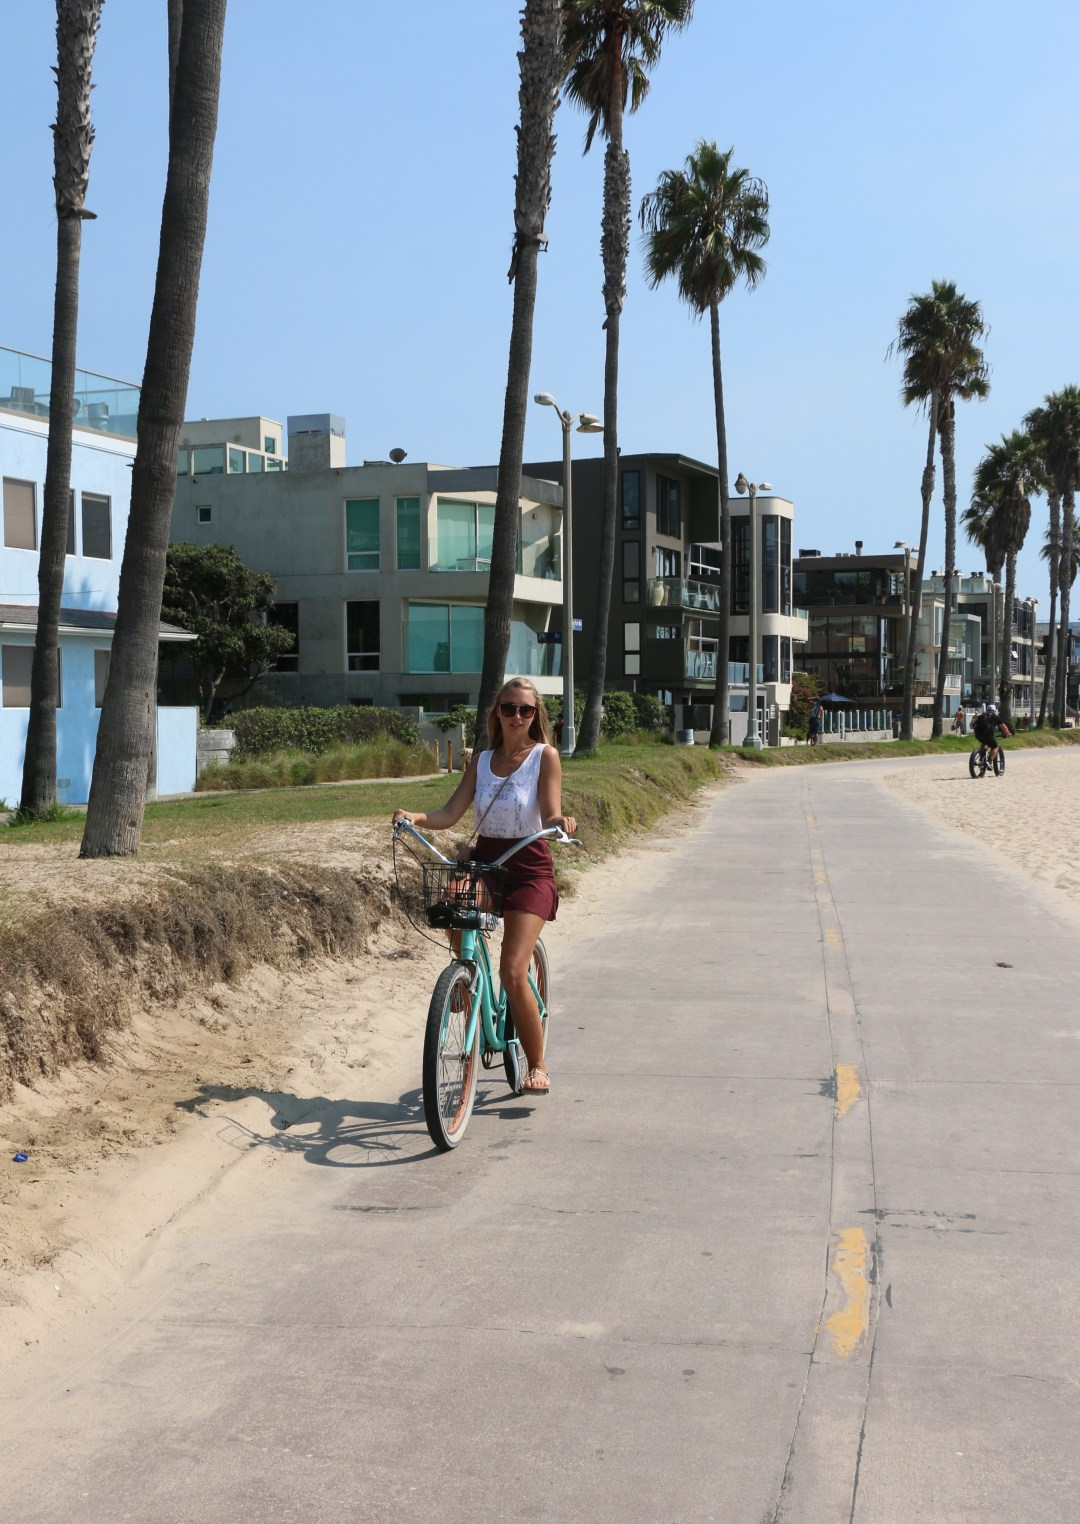 venice-beach-la-vacation-roadtrip-beach-fashion